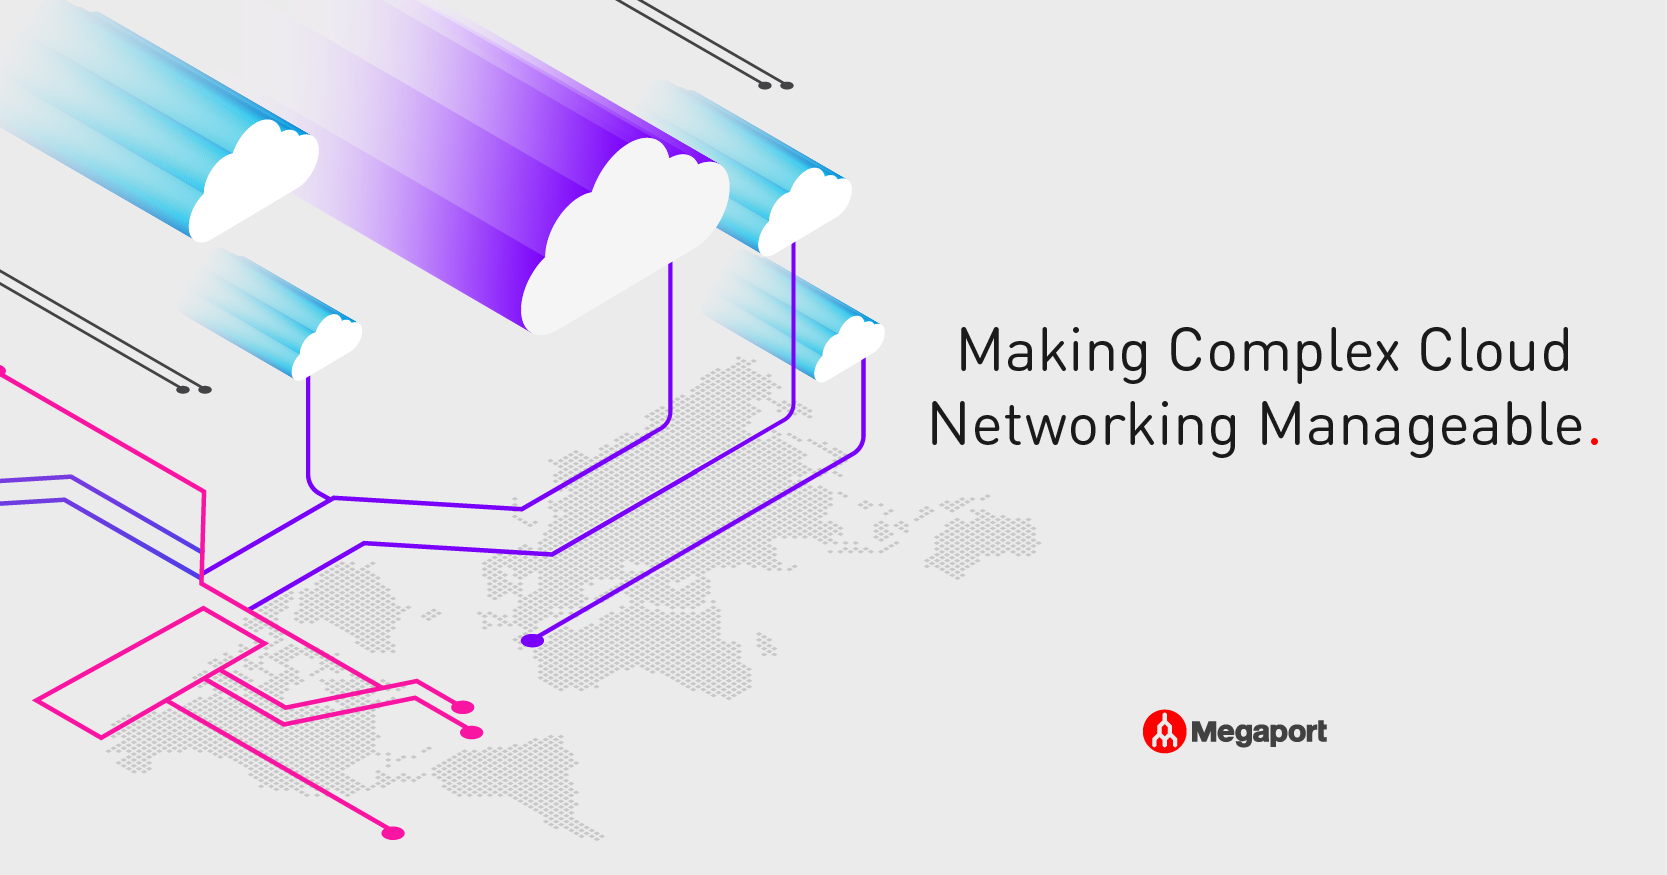 Making Complex Cloud Networking Manageable